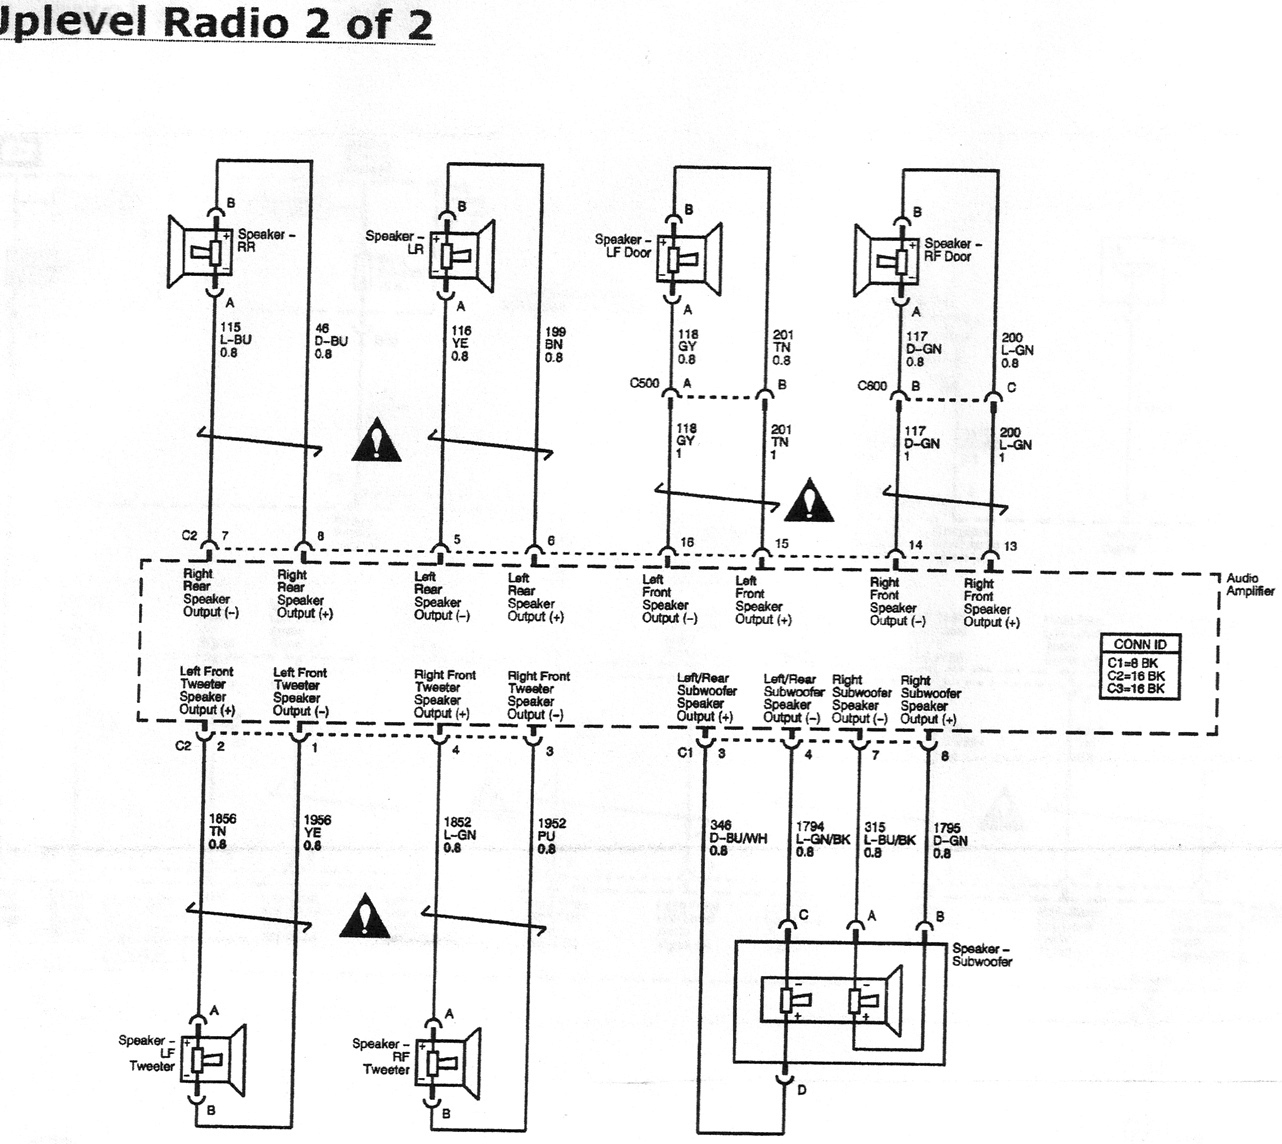 29802 monsoon amp speaker replacement monsoon_wiring_diagram_page_2 monsoon amp and speaker replacement saturn sky forums saturn MAF Sensor Wiring Diagram at fashall.co